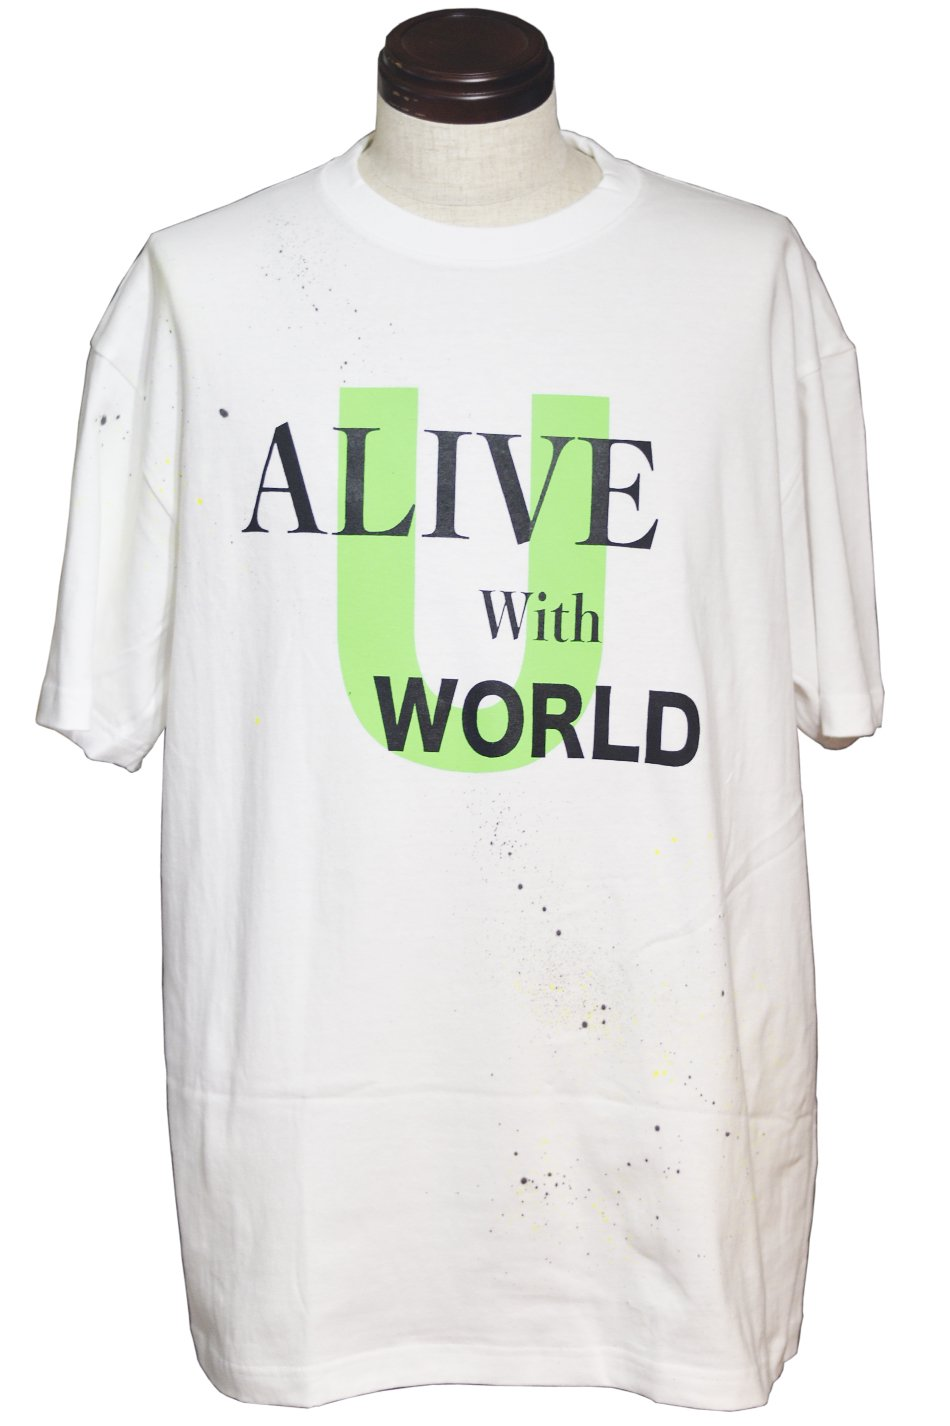 Alive with world(u).